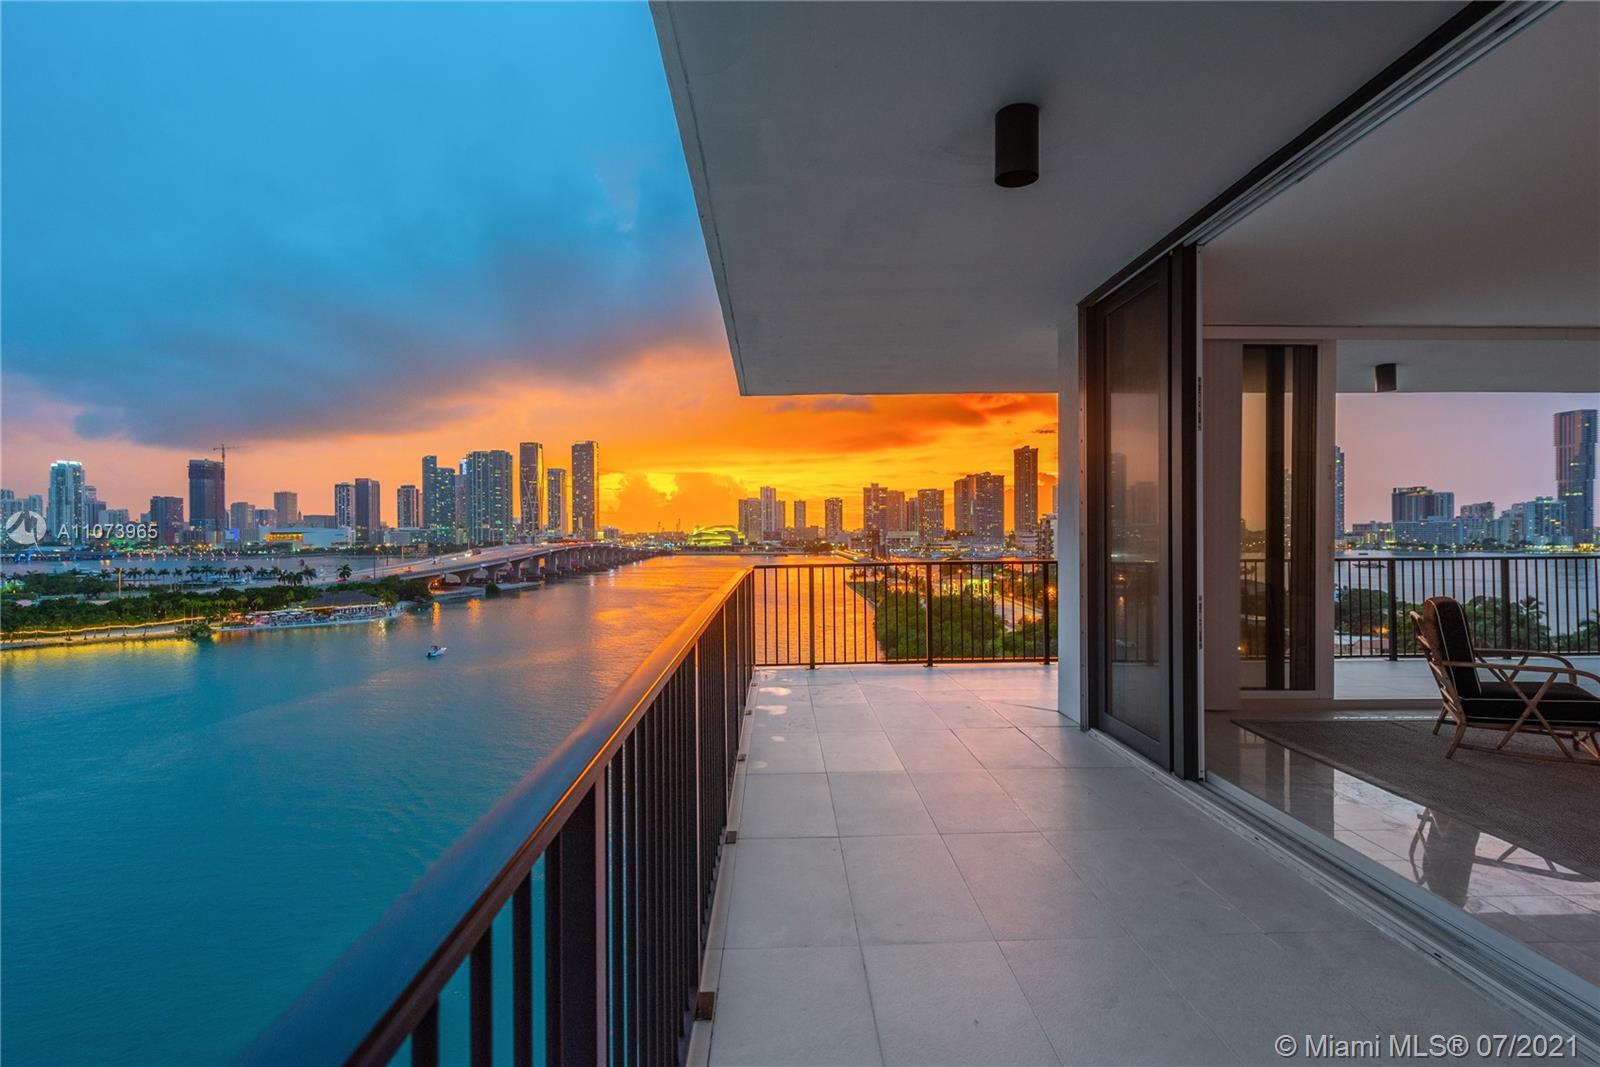 Located in the heart of the prestigious Venetian Island , this expansive 2 bedroom / 2 bath residence boasts spectacular views of Miami Skyline and of Biscayne Bay. With its cozy and serene surroundings, the 1000 Venetian Way Condo will surely make you feel at home.